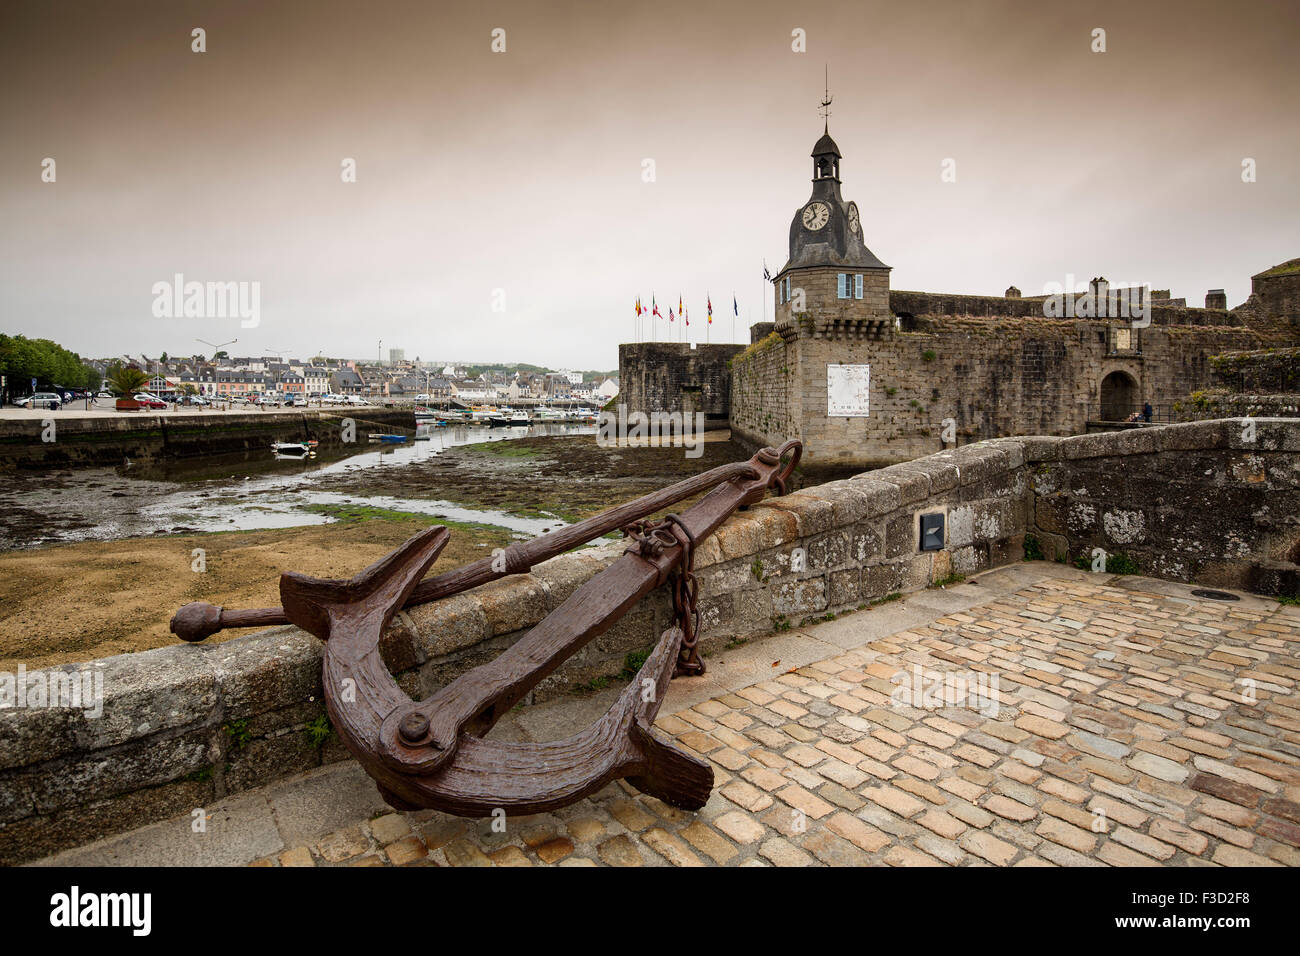 Concarneau Ville Close Finisterre French Brittany France Europe - Stock Image